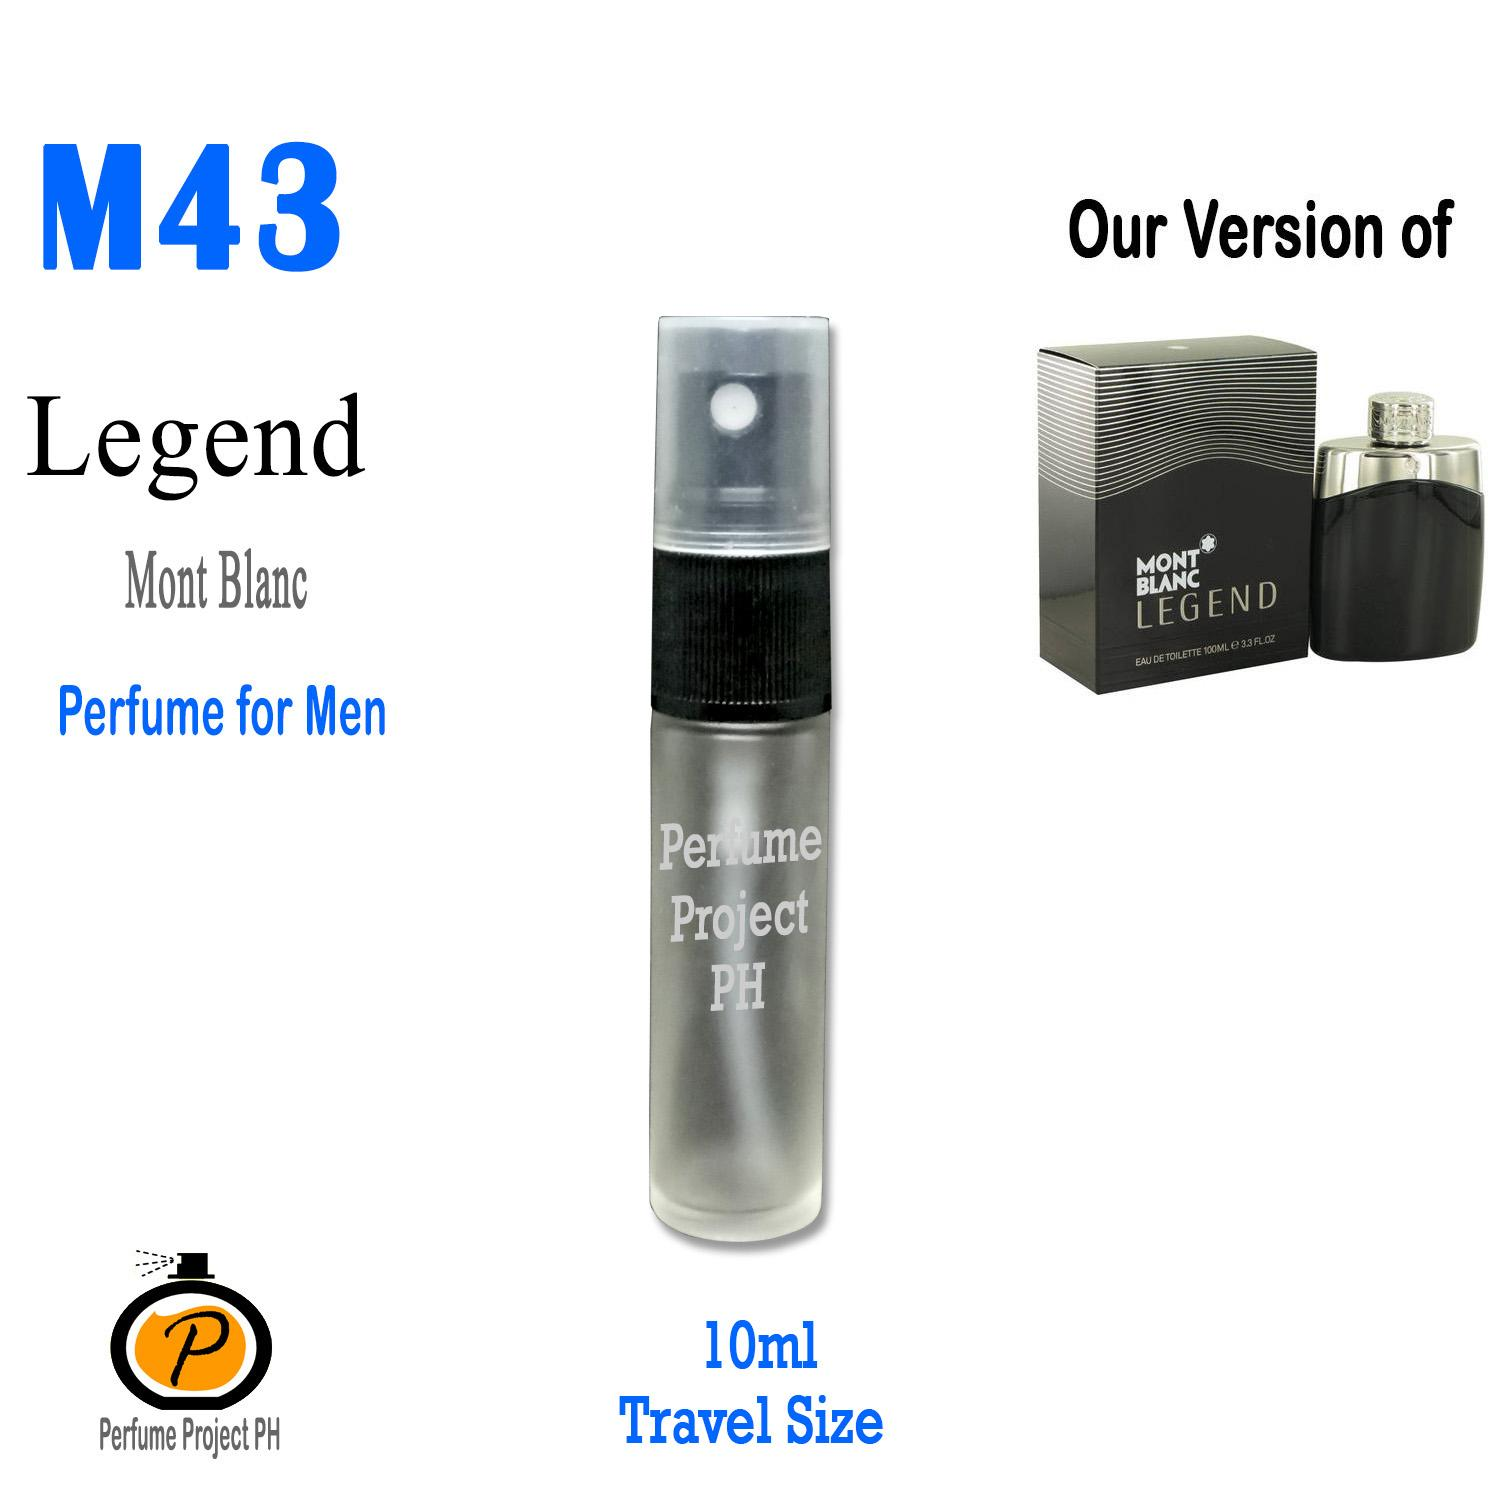 Buy Sell Cheapest Mstore Mont Blanc Best Quality Product Deals Parfum Original Legend For Men 100ml Perfume Project Ph 10ml Travel Size M43 Our Version Of By